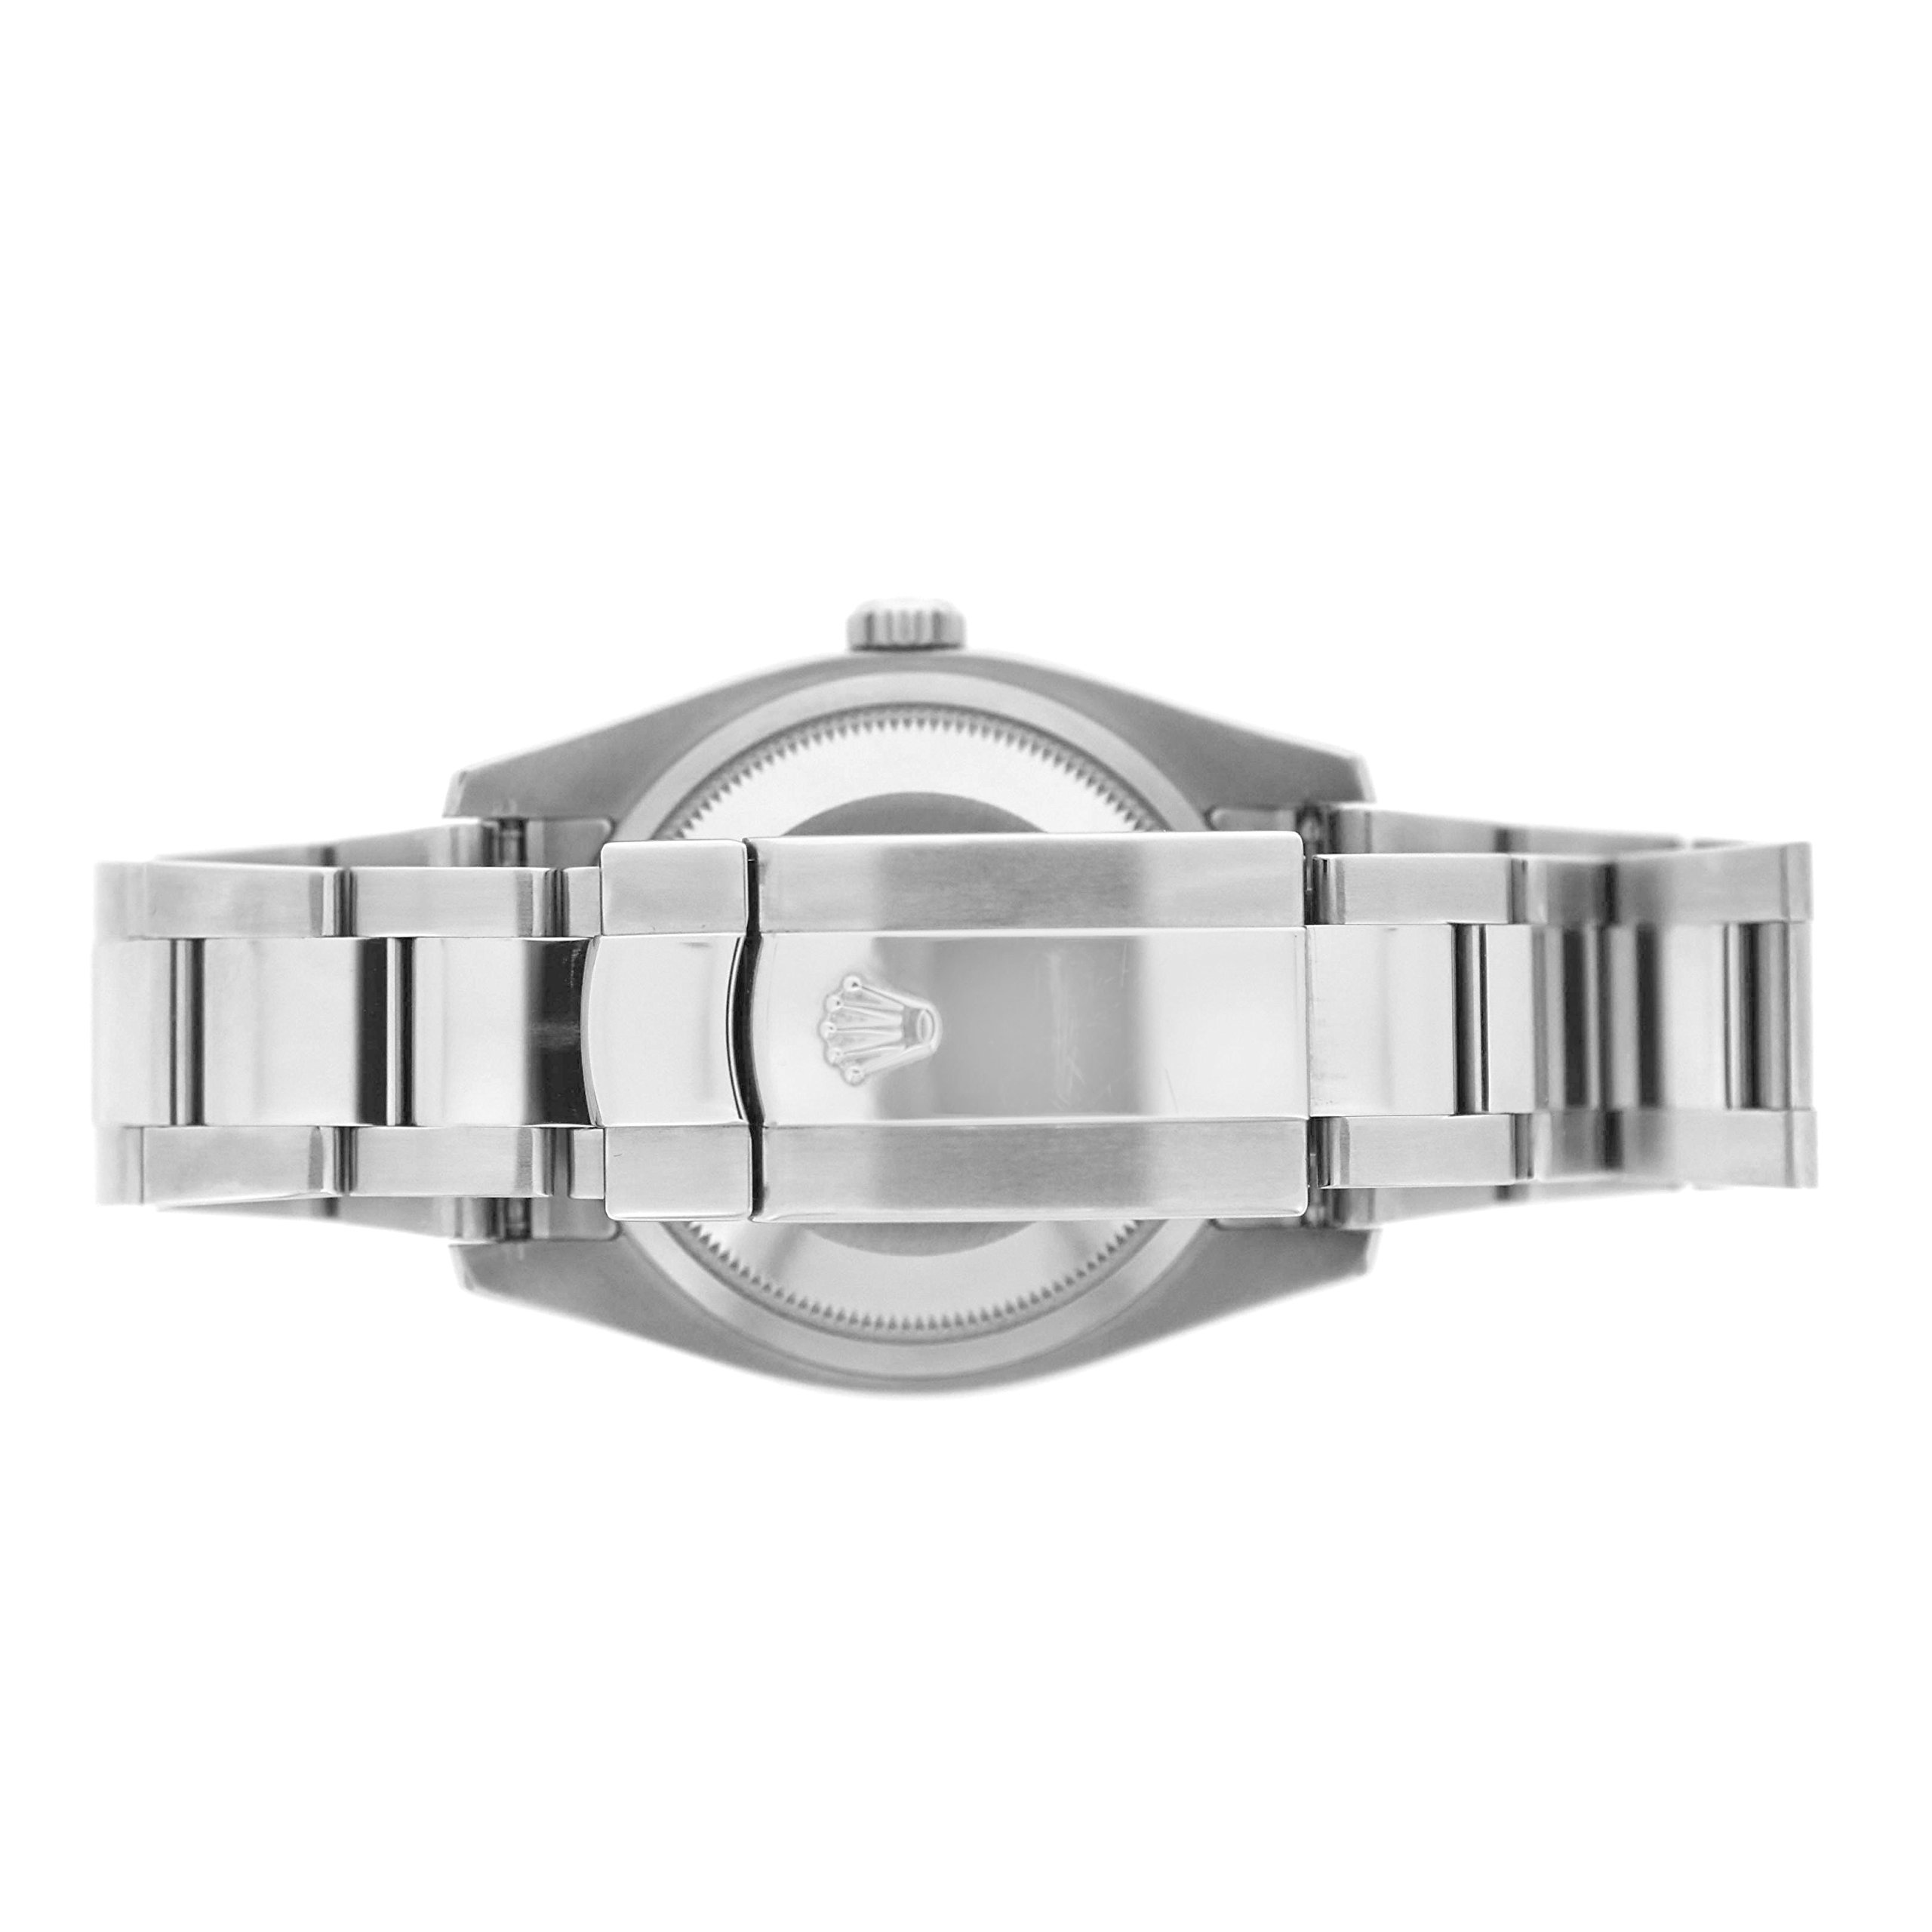 Rolex Datejust swiss-automatic mens Watch 116200 (Certified Pre-owned) by Rolex (Image #2)